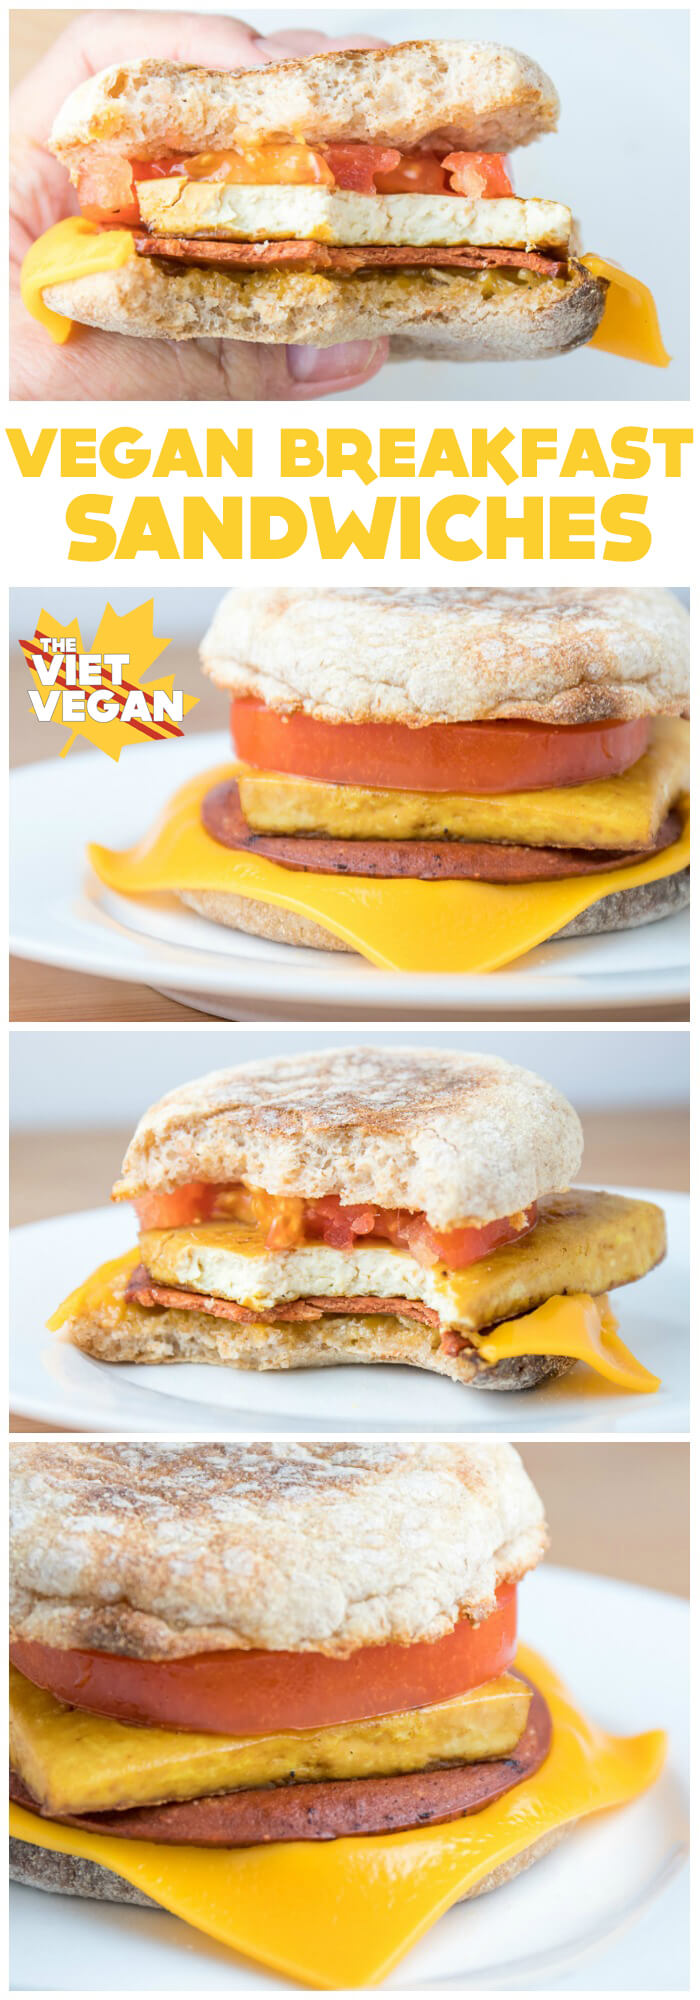 Vegan Egg McMuffins aka Breakfast Sandwiches! | The Viet Vegan